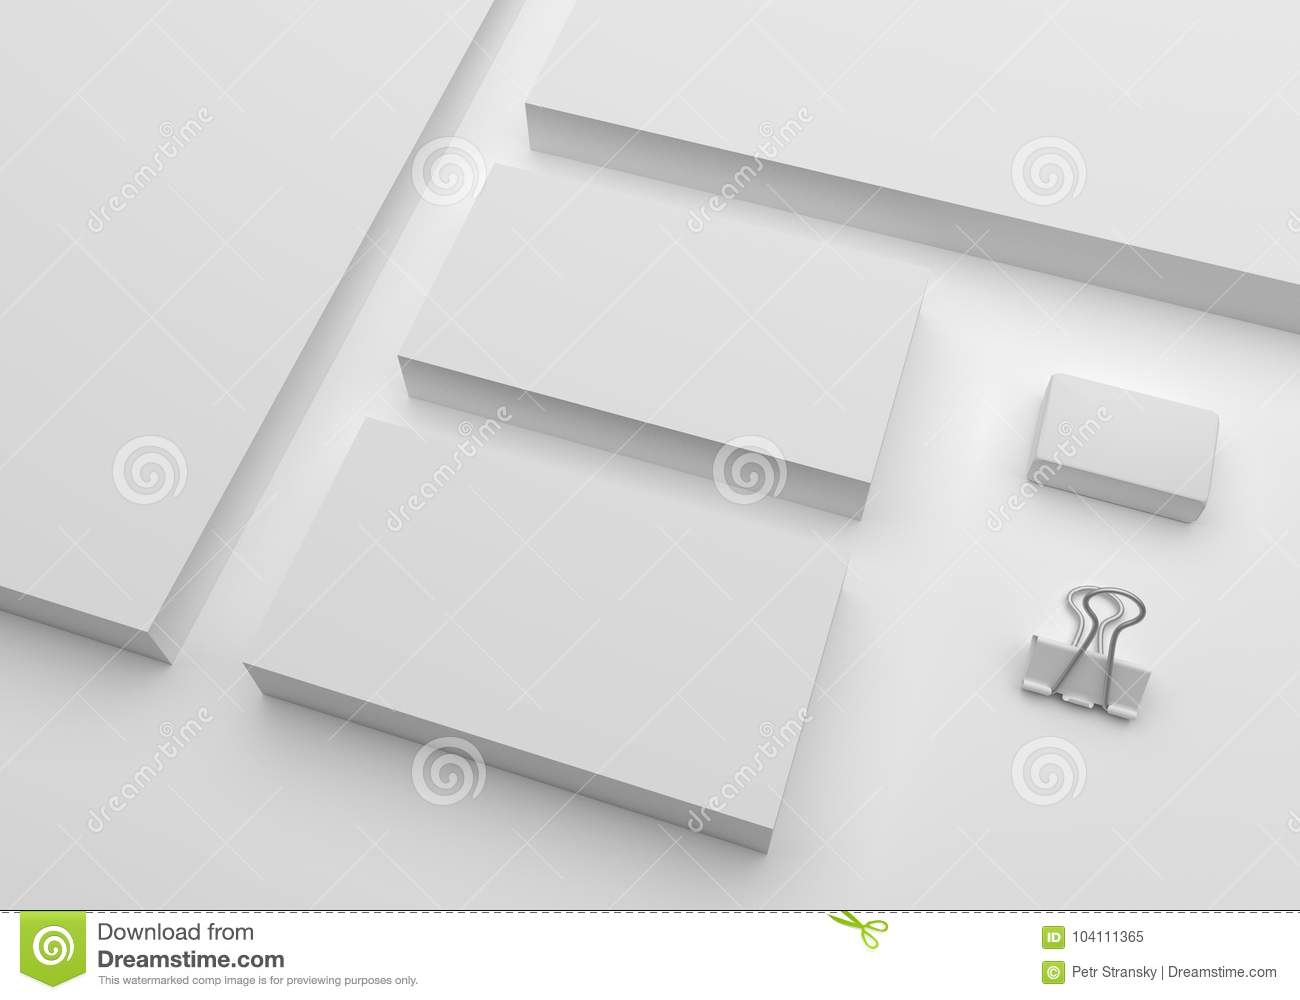 Blank 3d illustration mockup business cards stock illustration download blank 3d illustration mockup business cards stock illustration illustration of gray stationery reheart Gallery